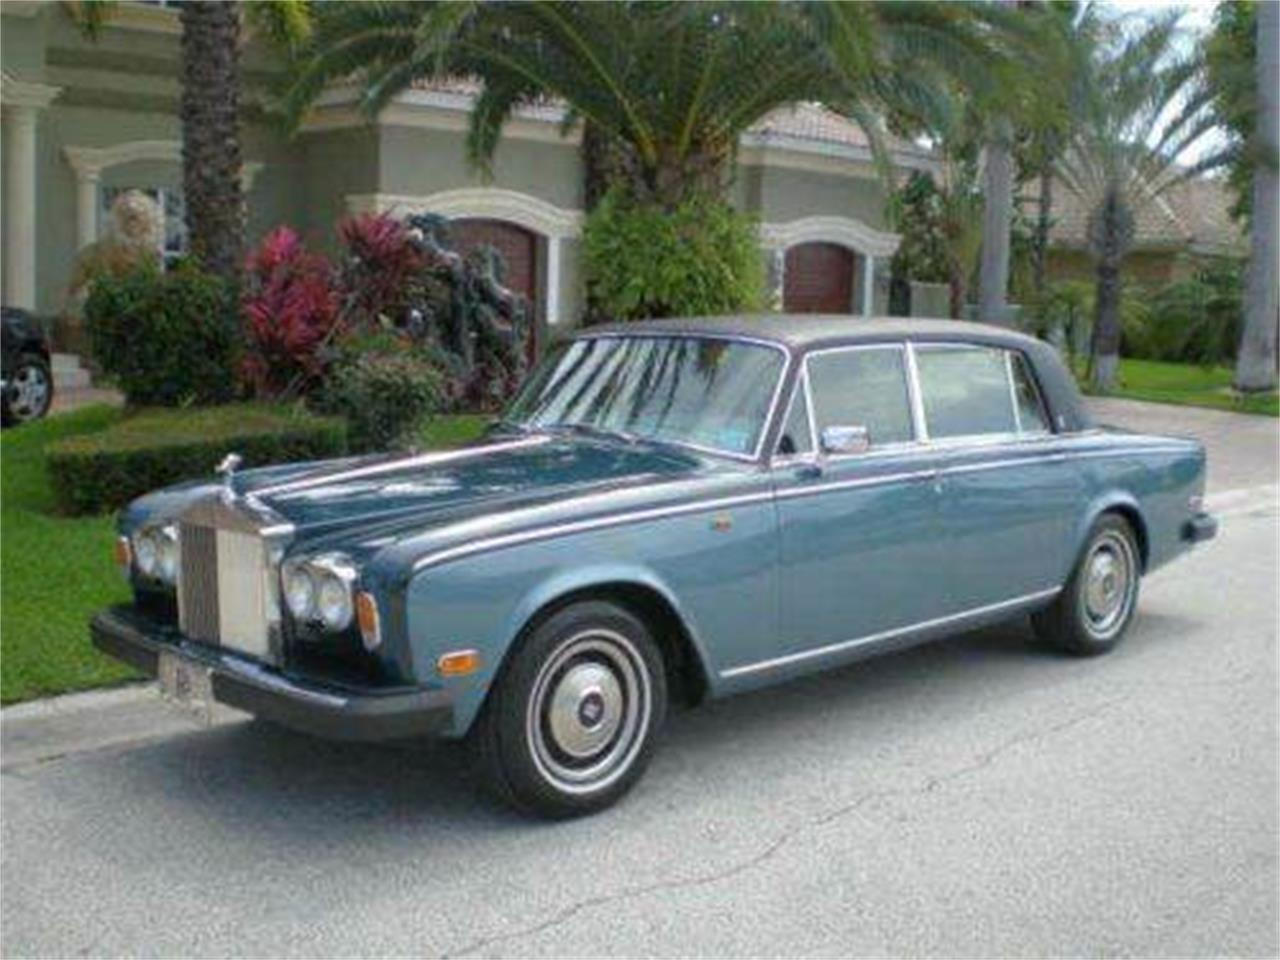 Large Picture of 1980 Rolls-Royce Silver Wraith located in Fort Lauderdale Florida - $24,950.00 - E005